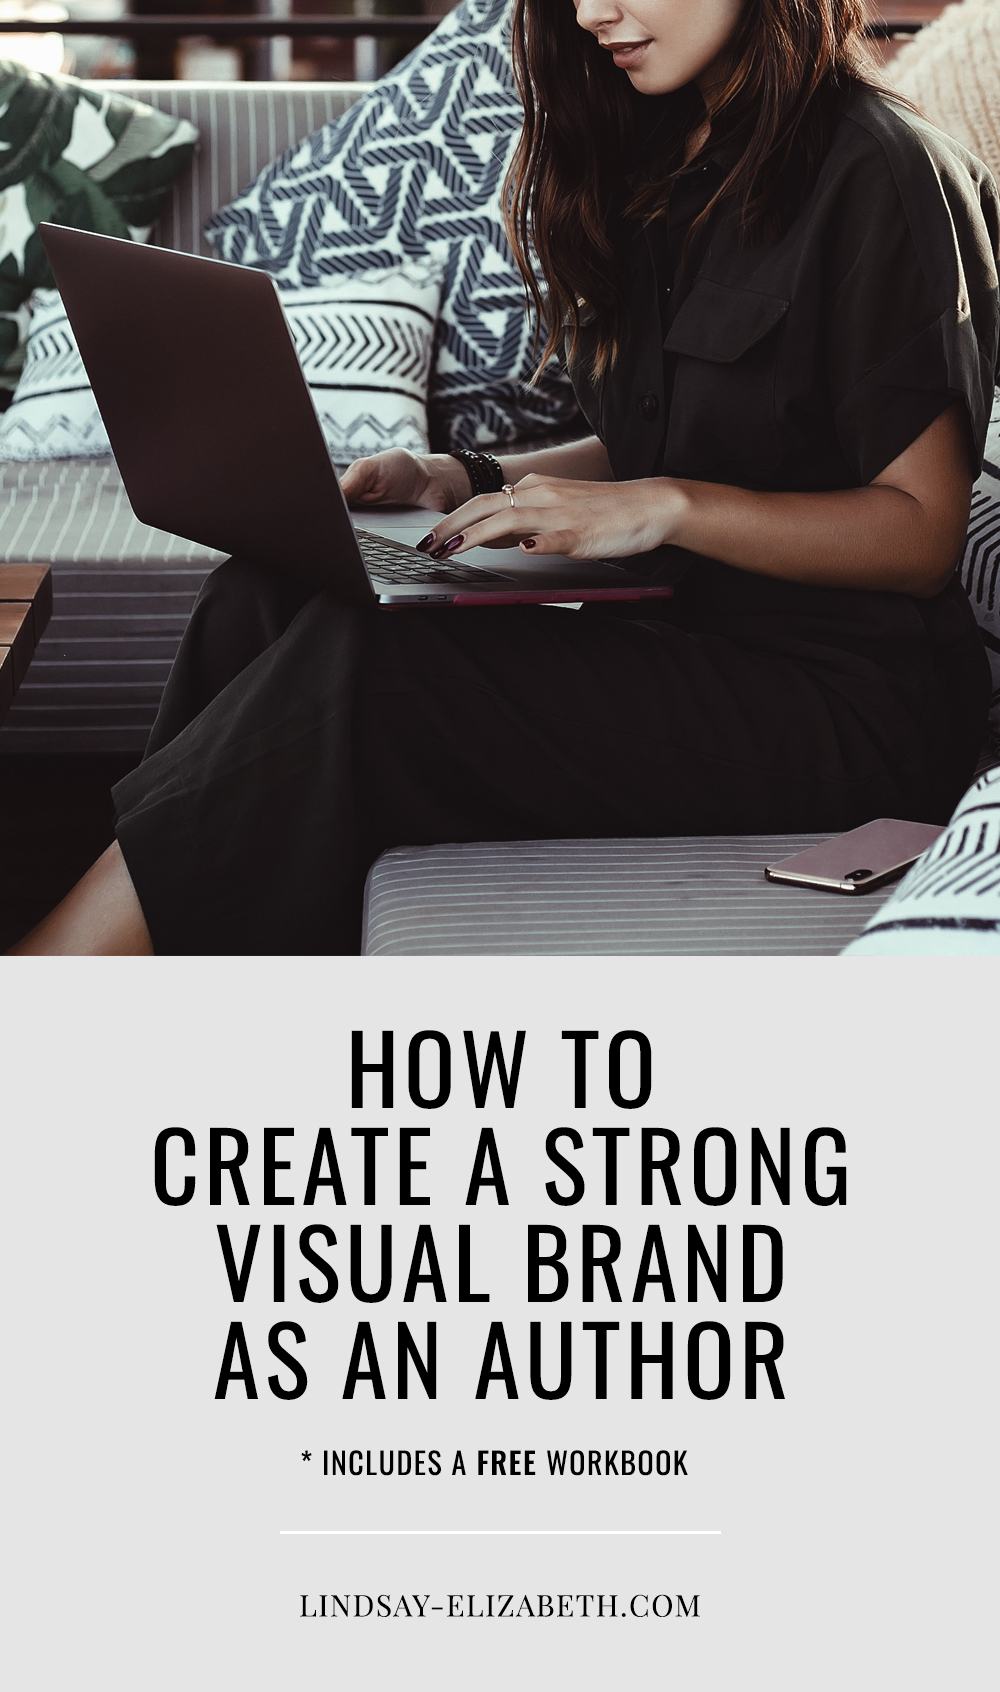 Struggling to brand yourself as an author? It can be challenging to translate our vision and creativity into a visual experience for our author platform such as Instagram and other social media, but it's one of our most powerful tools to help us reach readers. Check out this step-by-step guide to creating an author brand that is visually beautiful and communicates who you are as a storyteller. #authorplatform #writerplatform #authors #writers #brandingtips